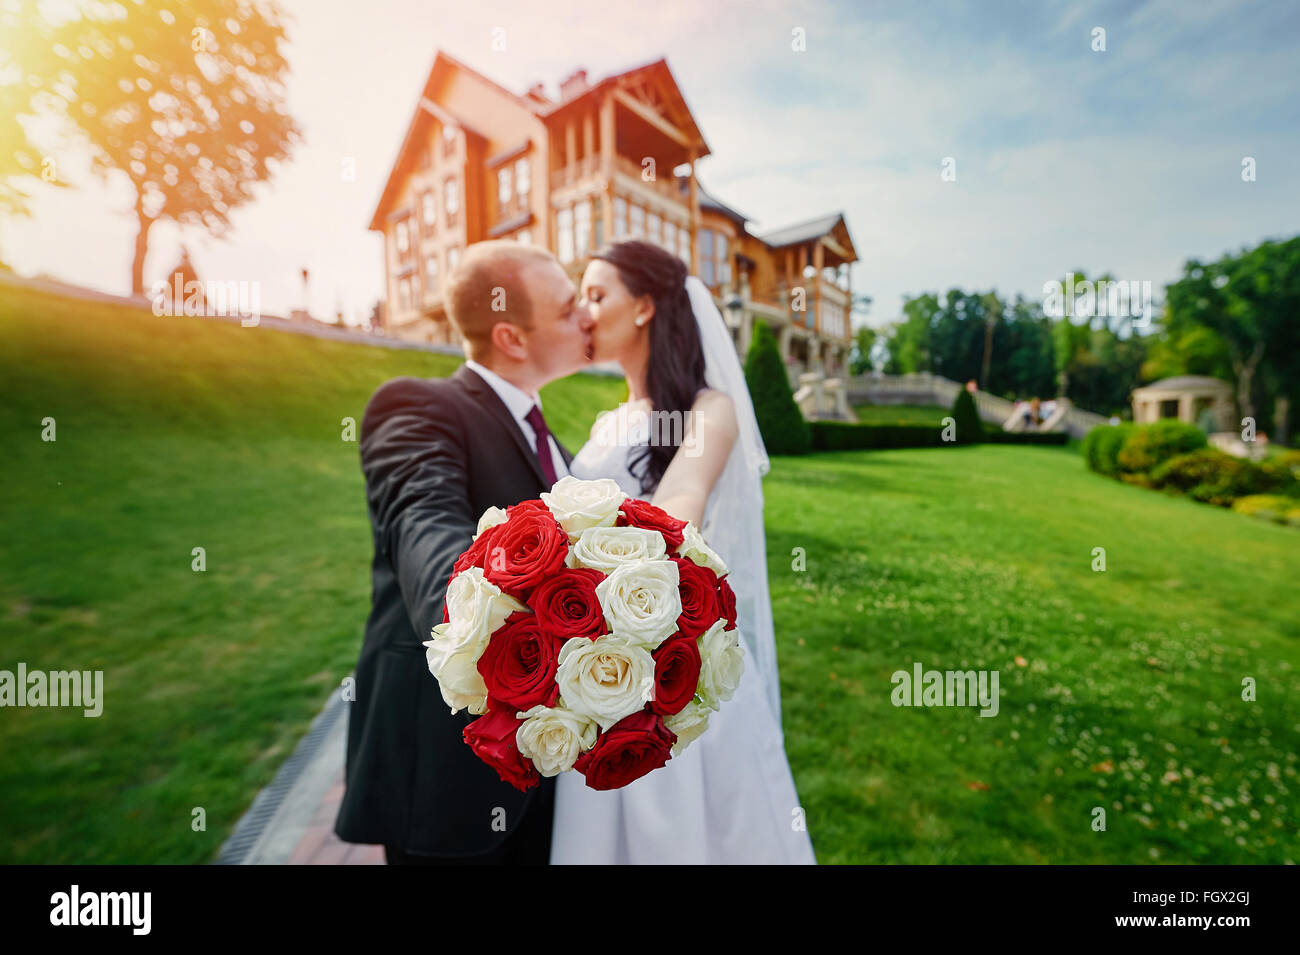 European bride and groom kissing in the park near house - Stock Image